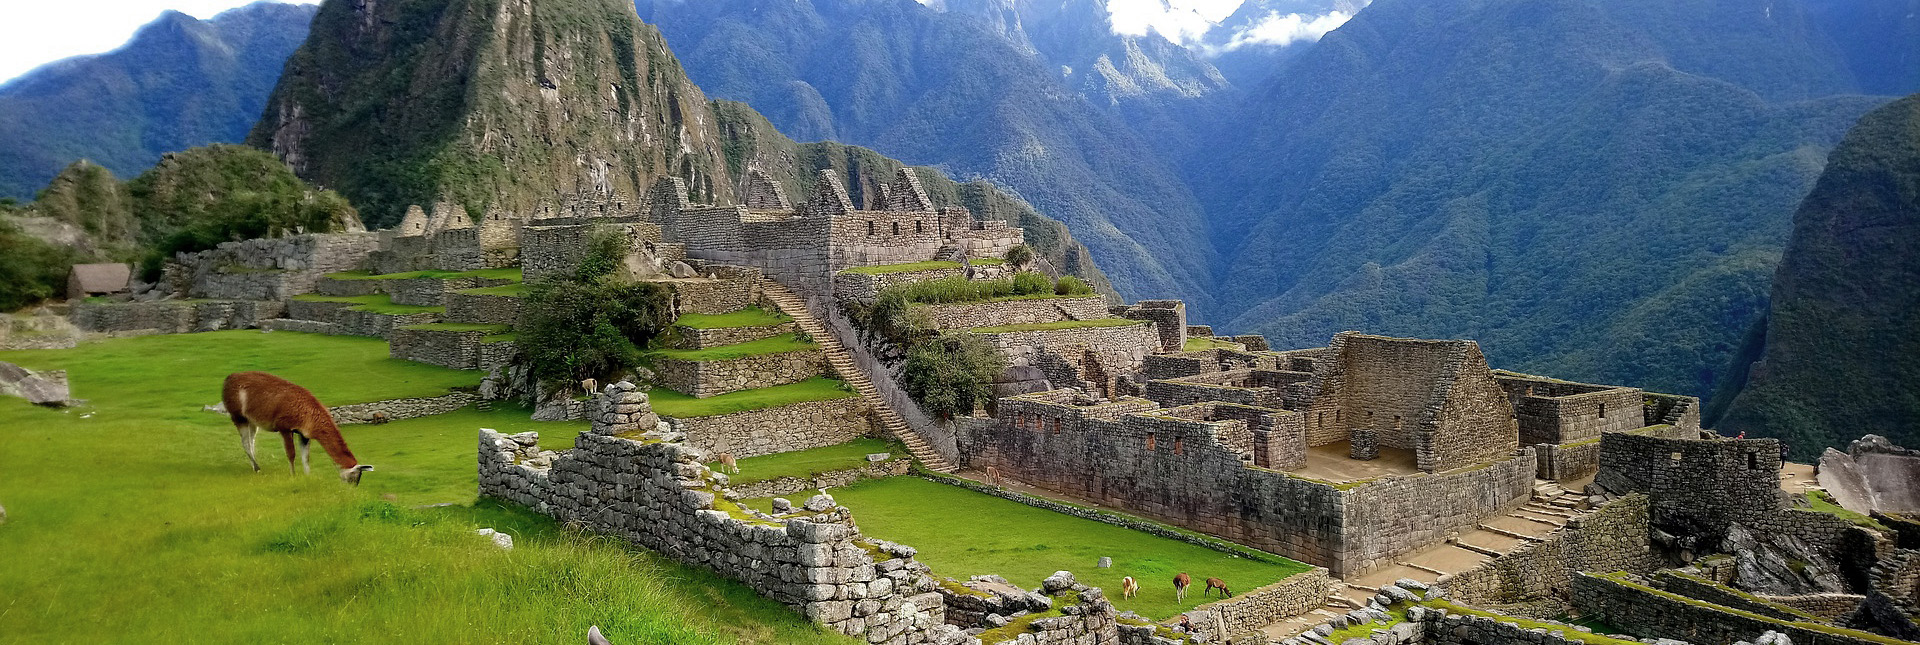 View of Inca Ruins